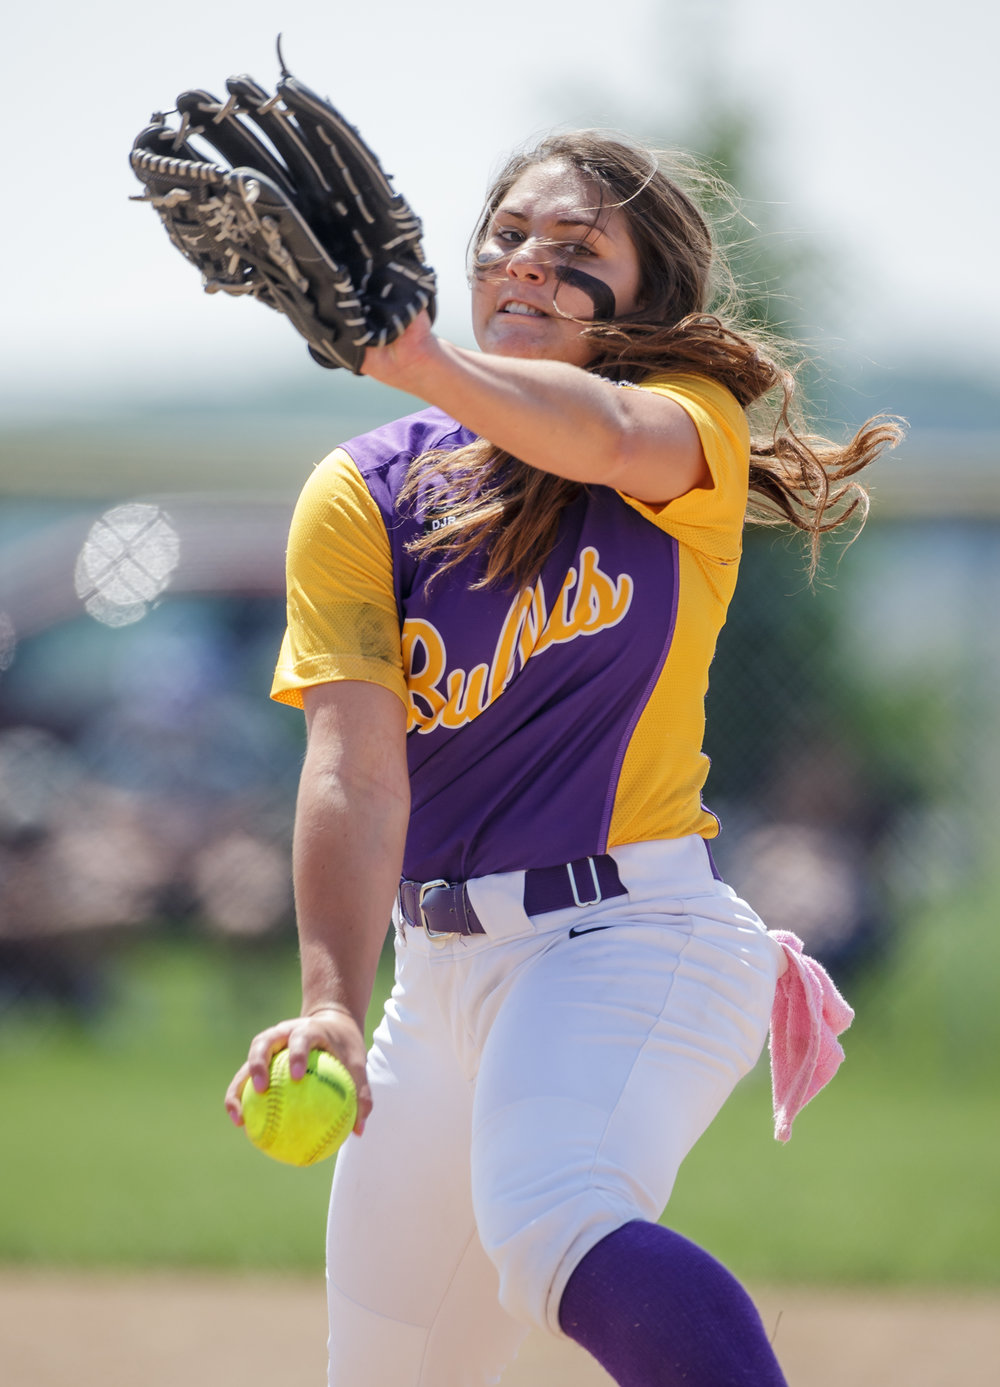 Williamsville's Payton Long (21) winds up a pitch against Tri-City in the first inning during the Class 2A Williamsville Sectional Championship game at Jane Grebner Field, Saturday, May 27, 2017, in Williamsville, Ill. [Justin L. Fowler/The State Journal-Register]